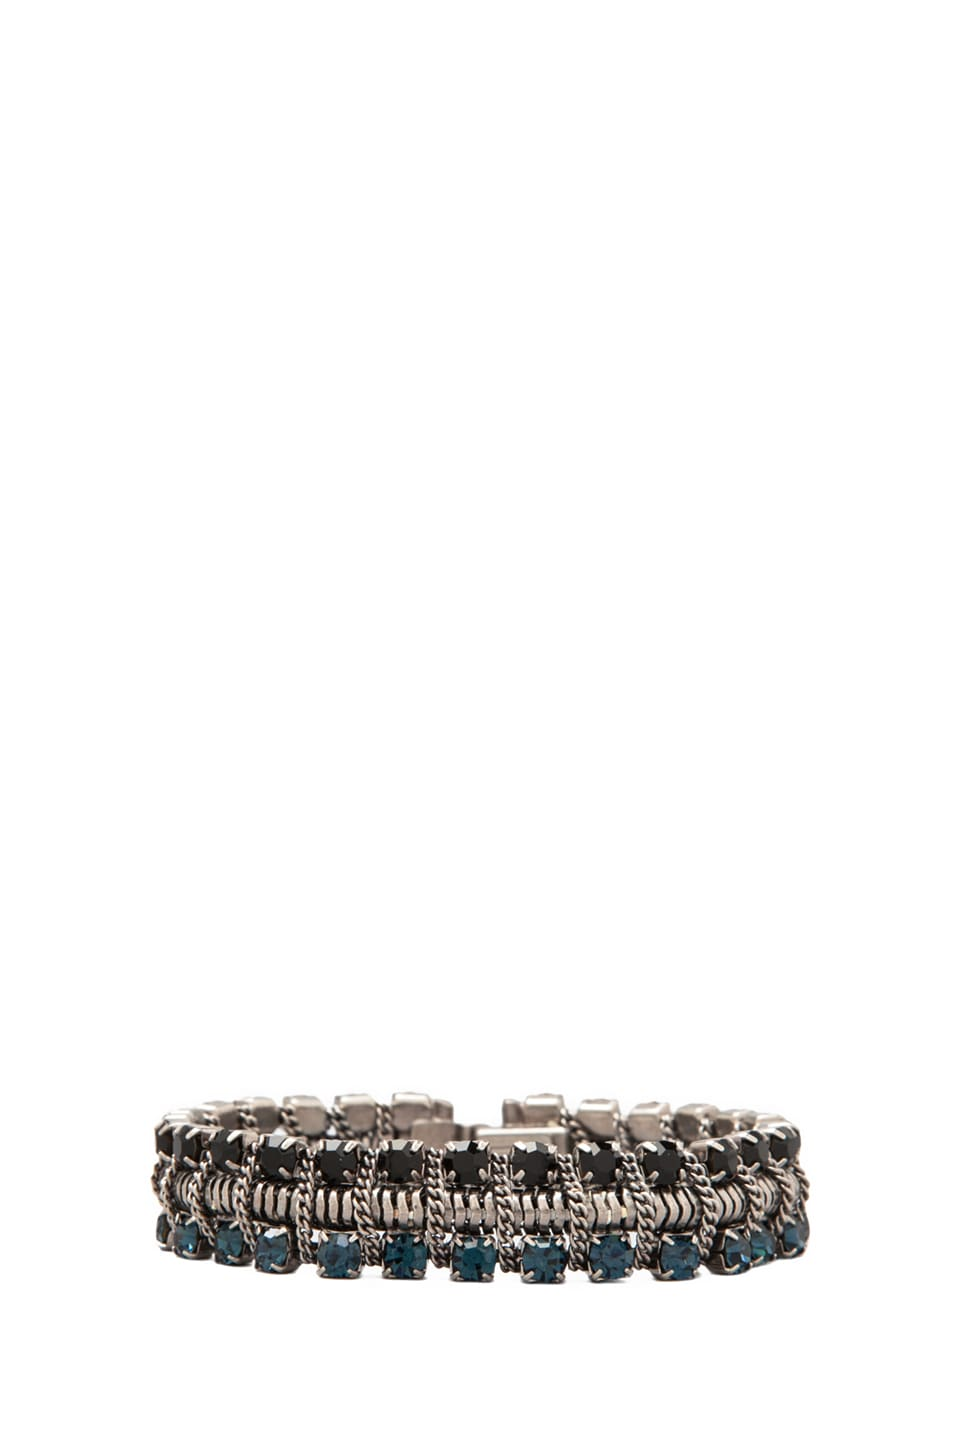 DANNIJO Giulia Bracelet in Black/Blue